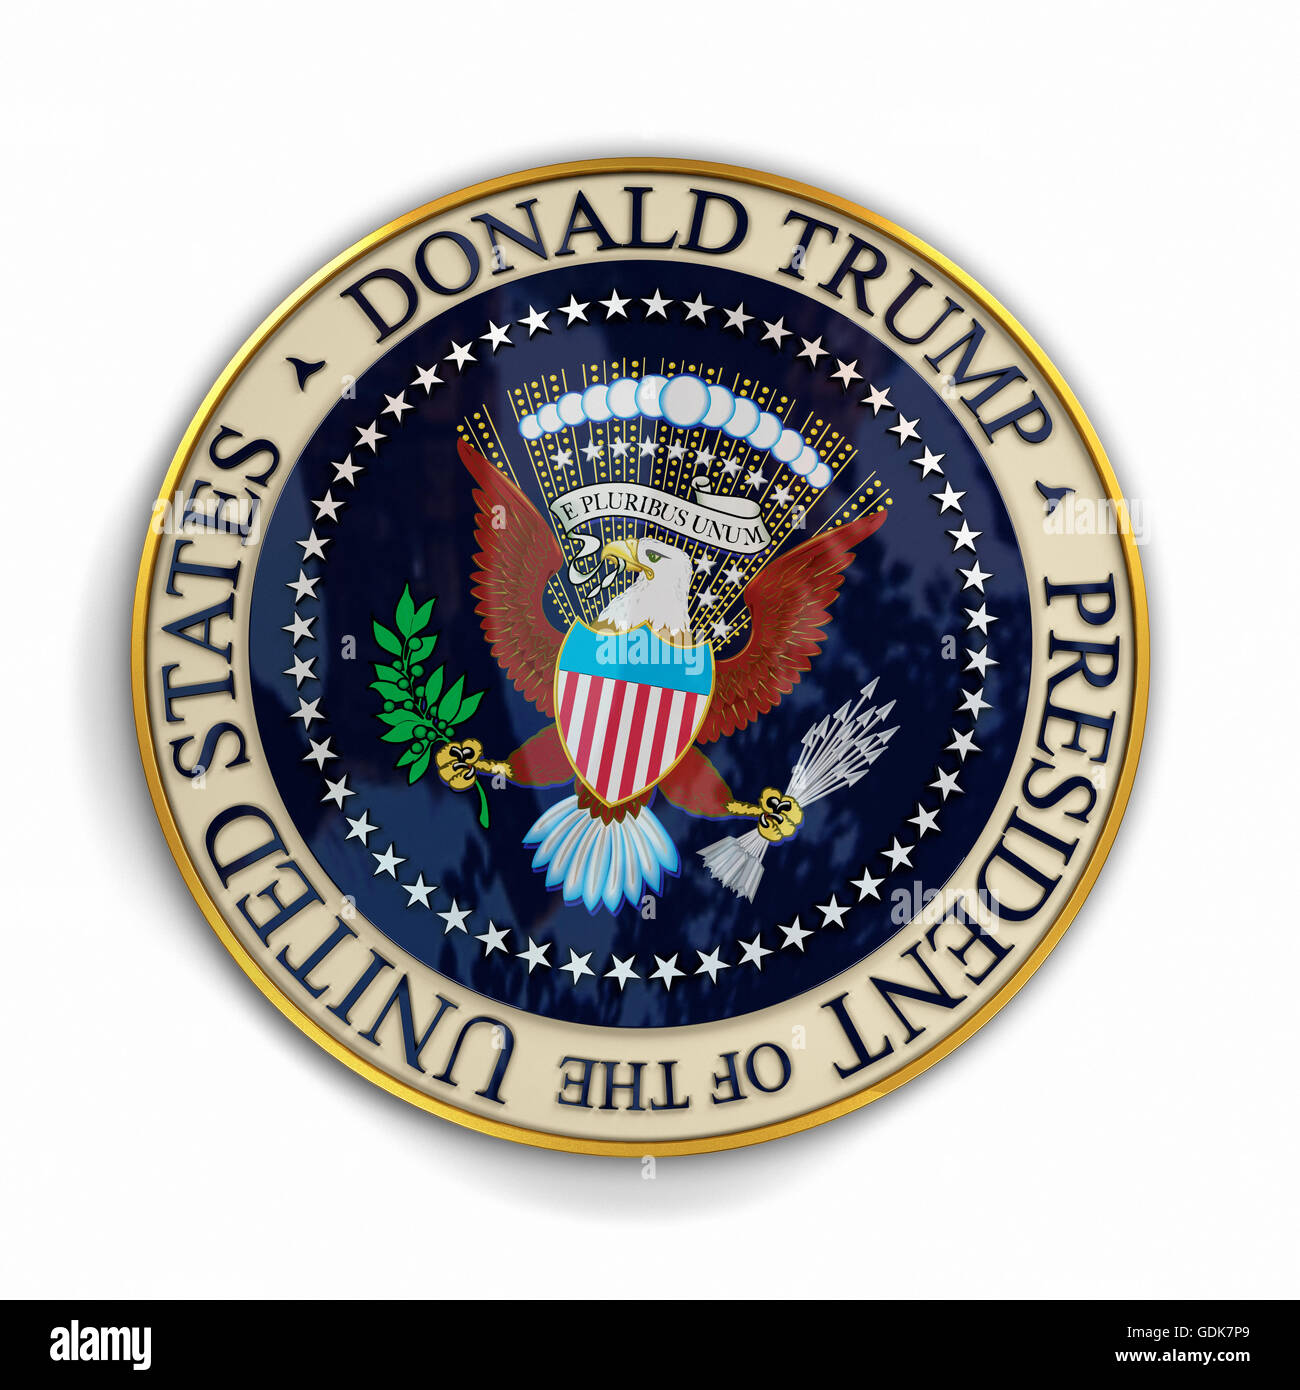 Illustration of presidential seal with Donald Trump's name on it. Stock Photo